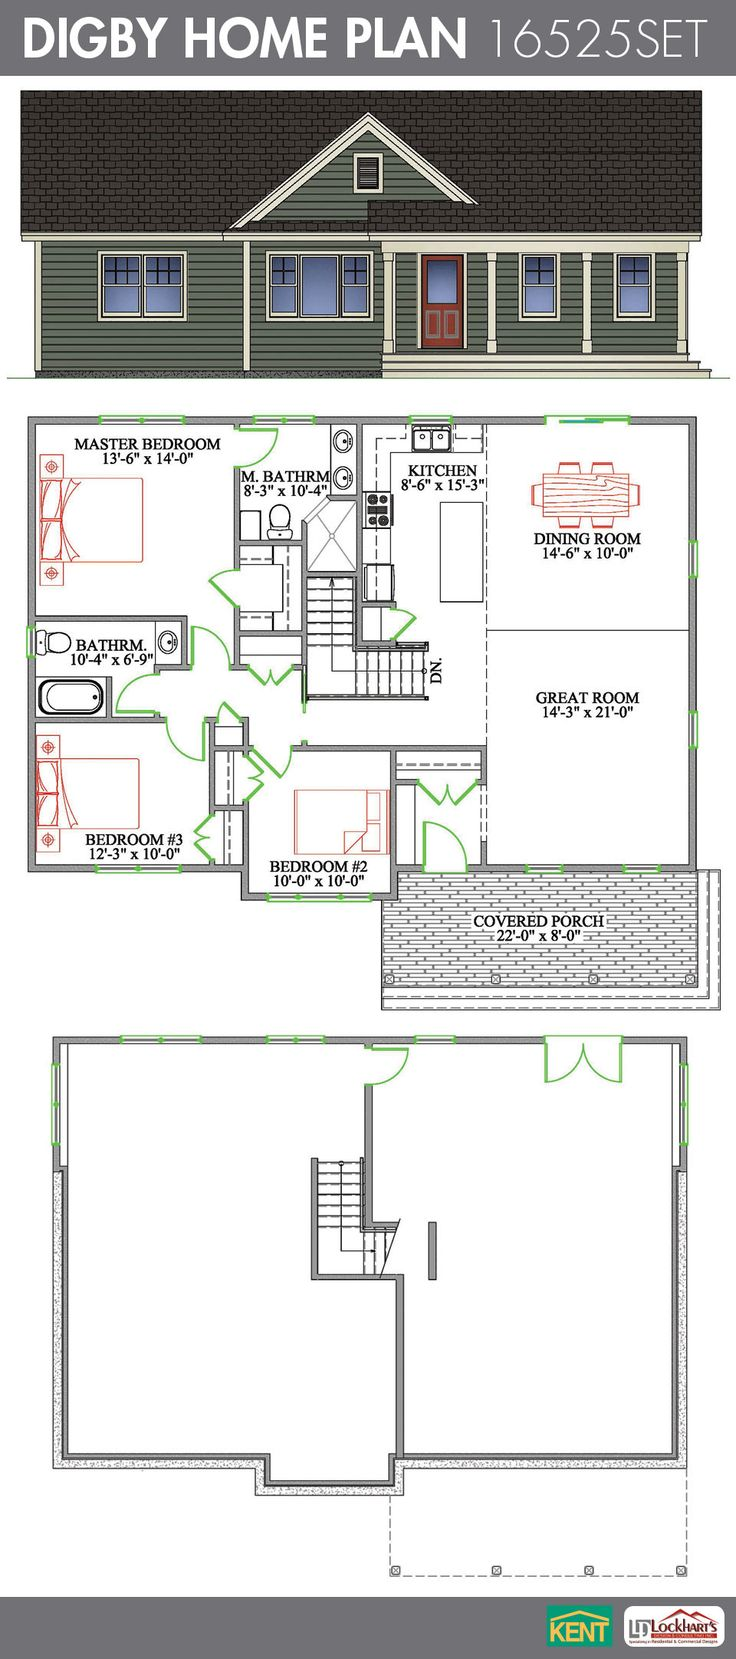 Digby 3 Bedroom 2 Bathroom Home Plan Features Open Concept Great Room Dining Room Kitchen